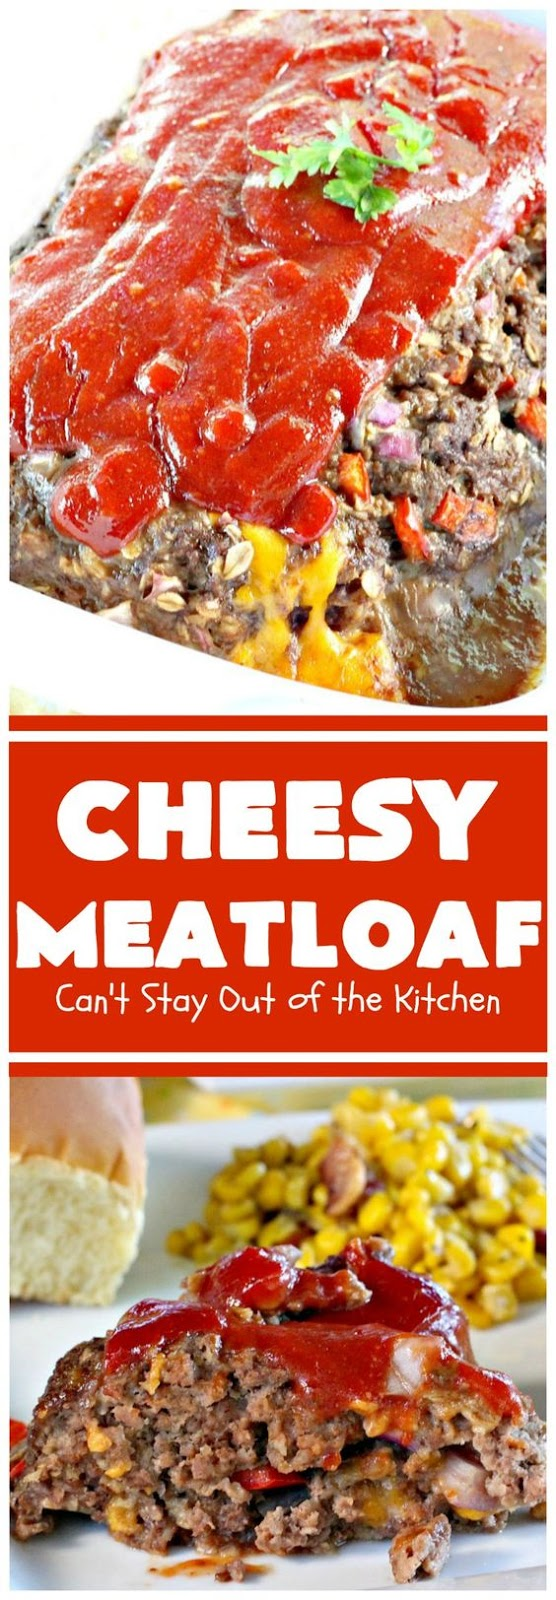 DELICIOUS CHEESY MEATLOAF